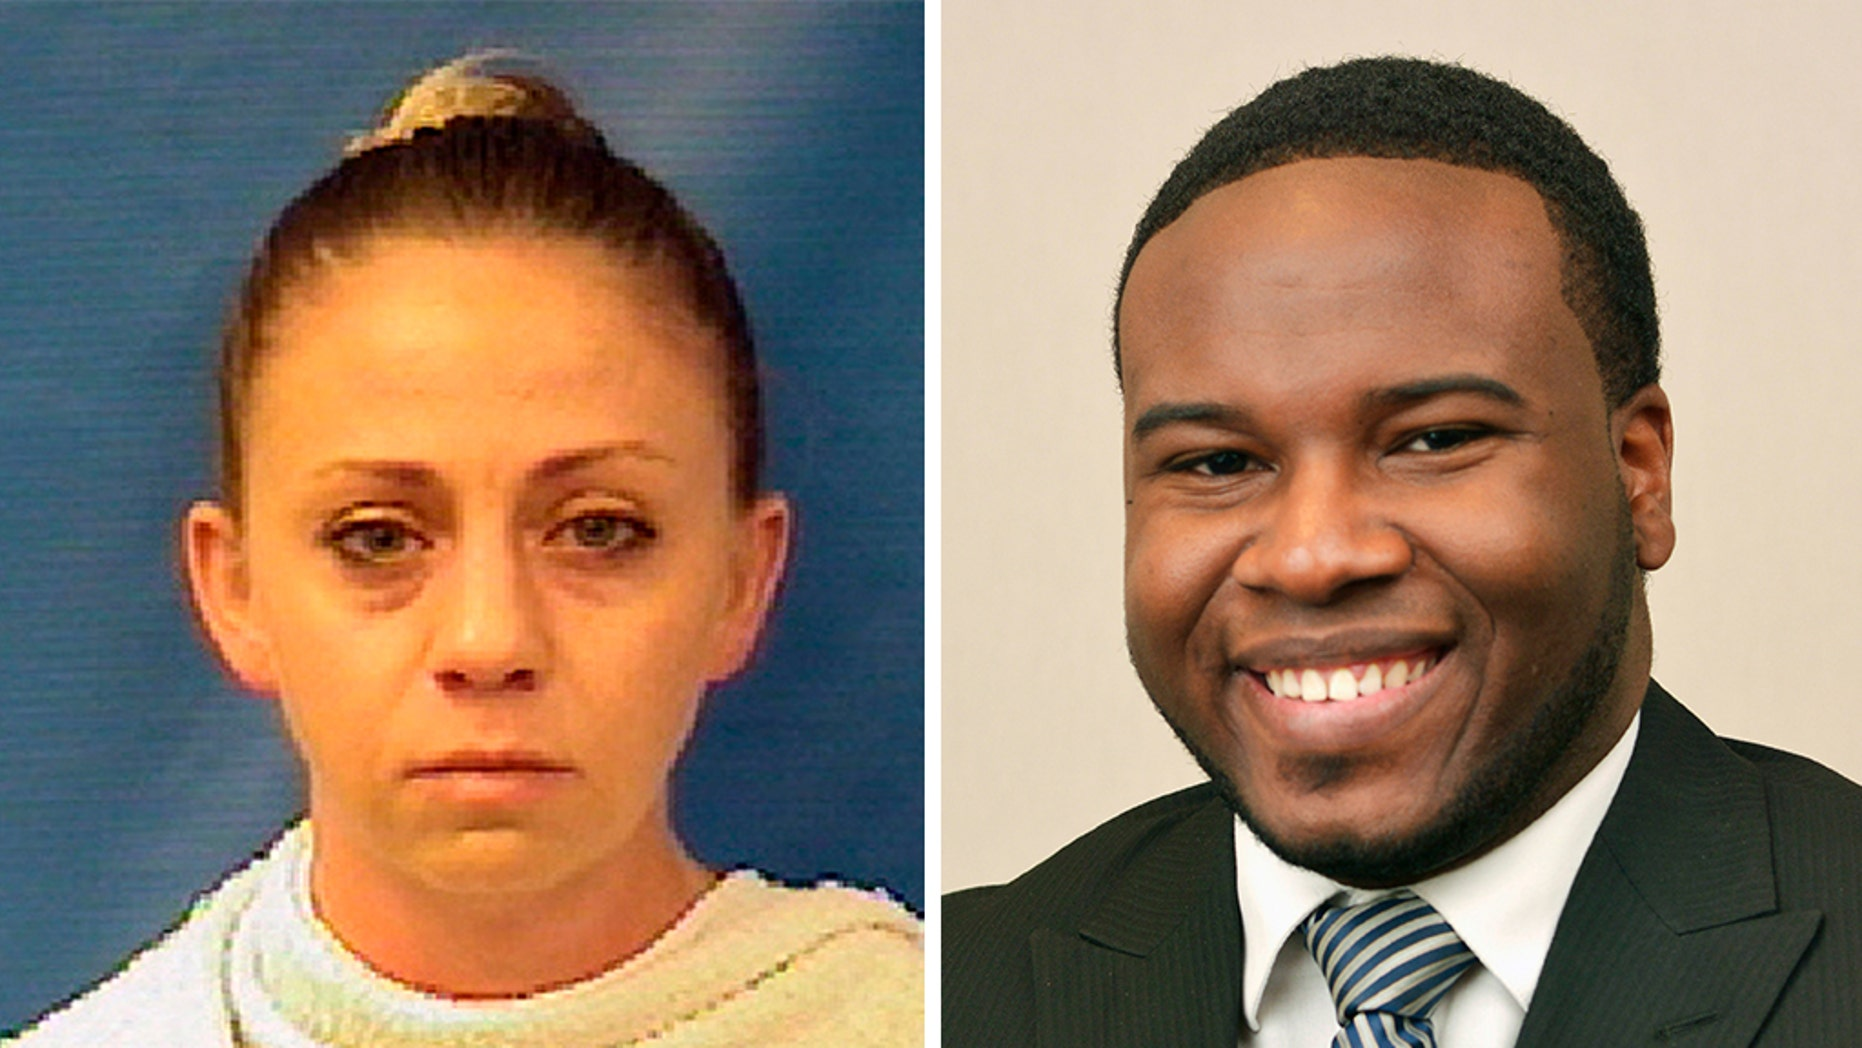 Officer Amber Guyger was charged with manslaughter in the killing of Bothan Jean in Dallas.